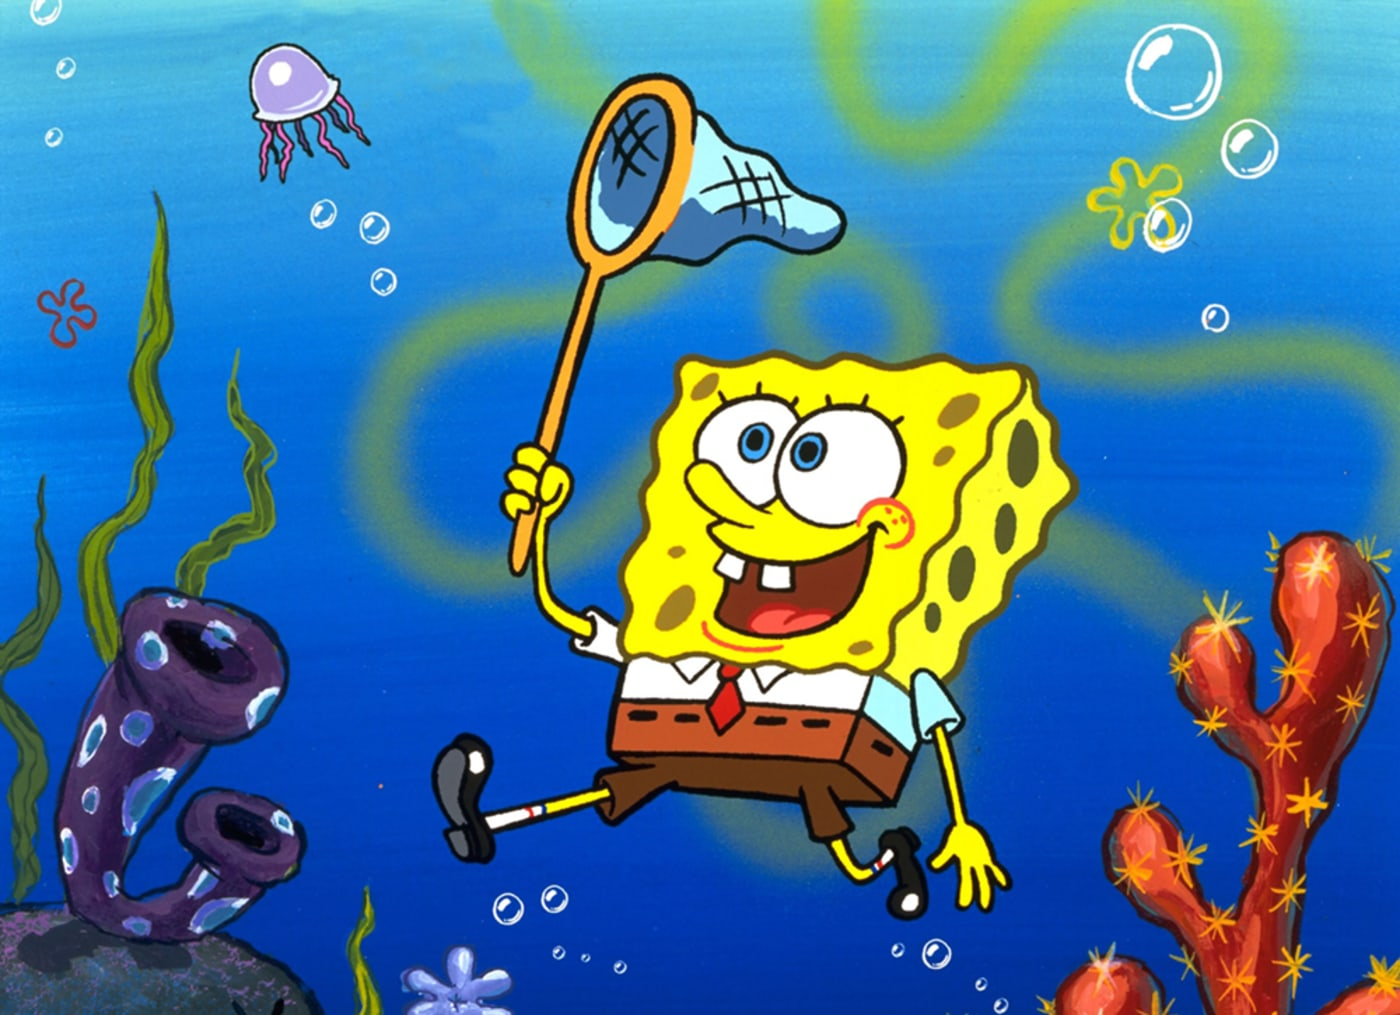 spongebob squarepants nickelodeon press